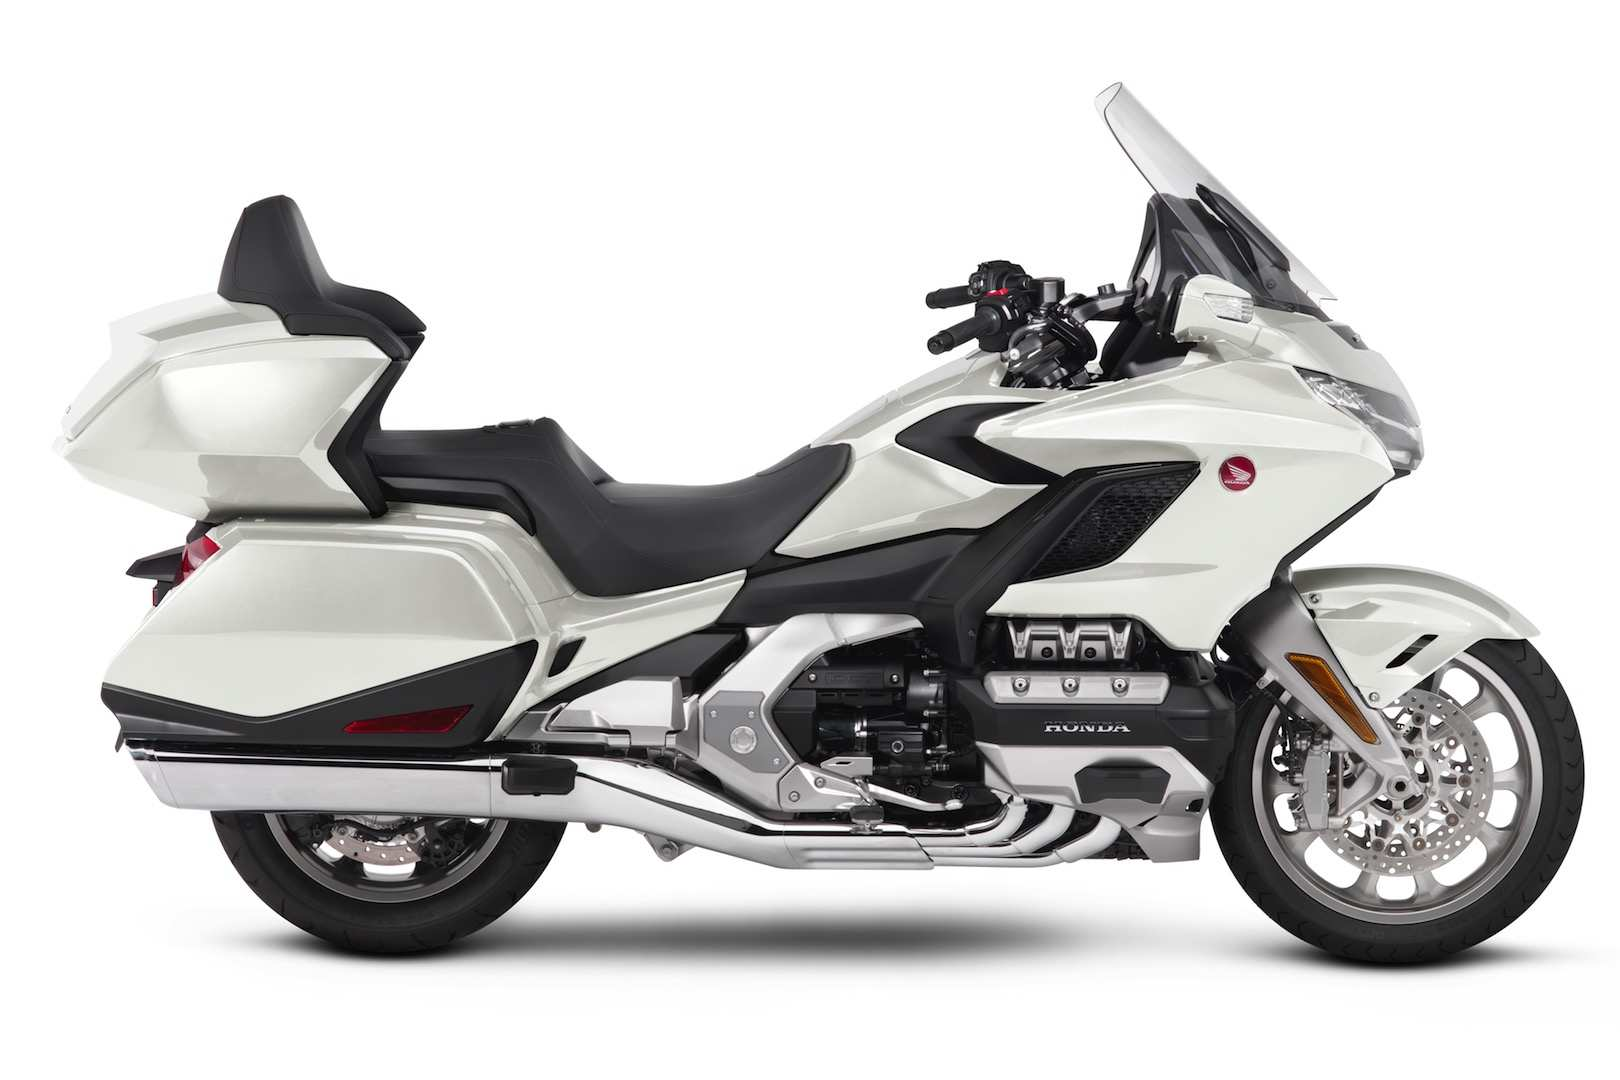 74 Great 2020 Honda Goldwing Colors New Review by 2020 Honda Goldwing Colors